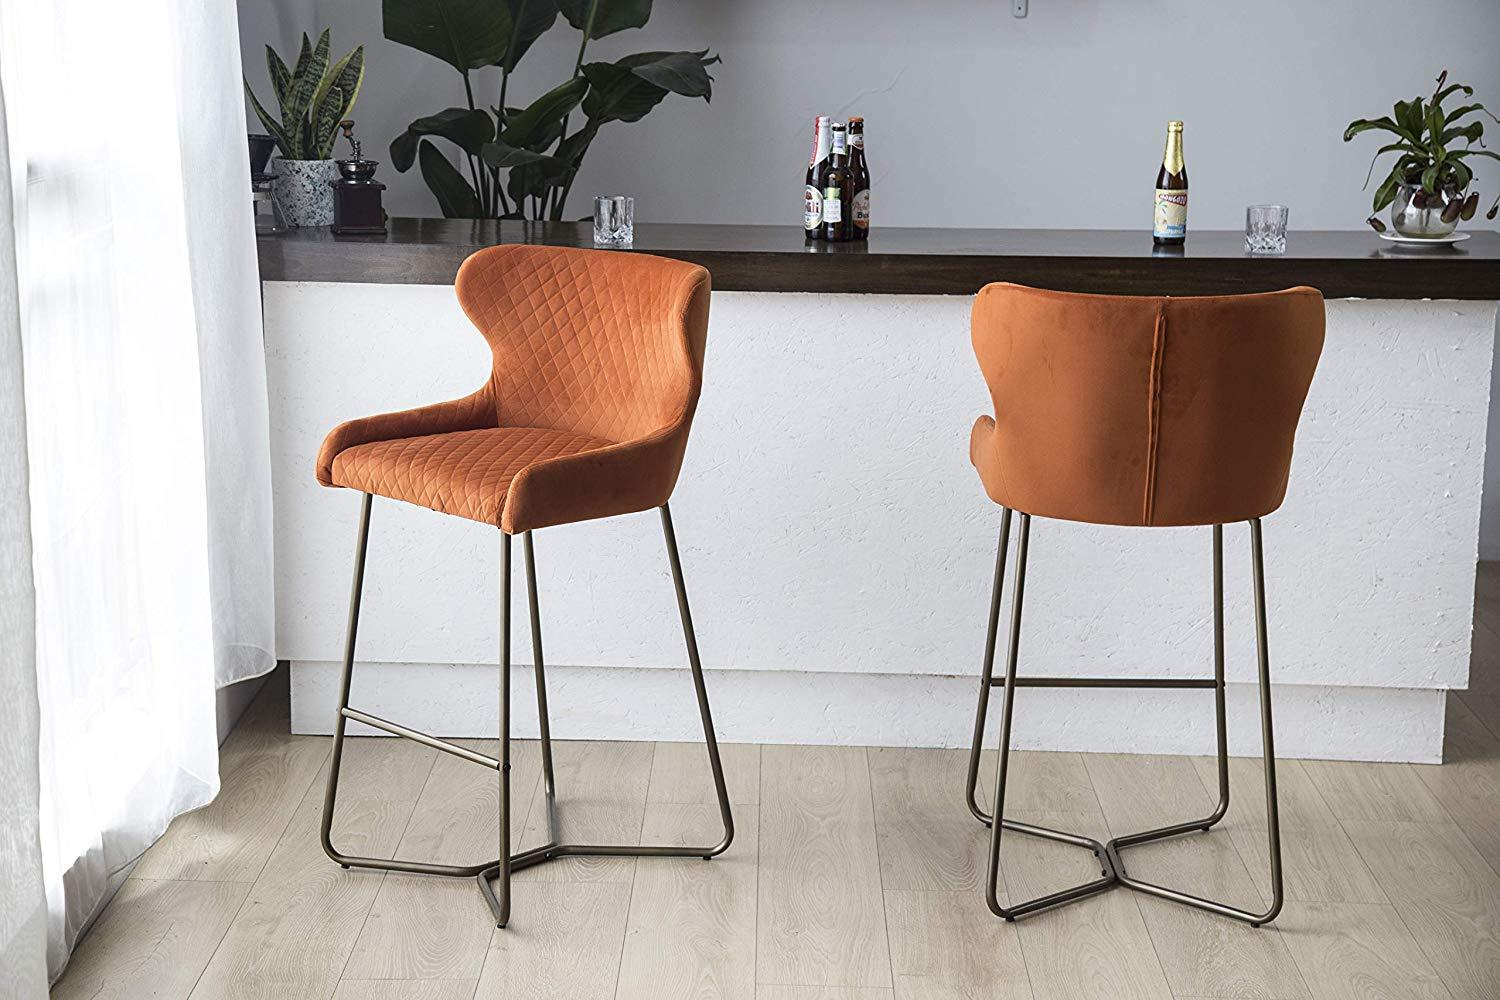 Burnt Orange Luxe Azuki Luxury Velvet Diamond Bar Chair Stool Brass Bronze Leg 65 cm - Pebble & Leaf Homefurniture